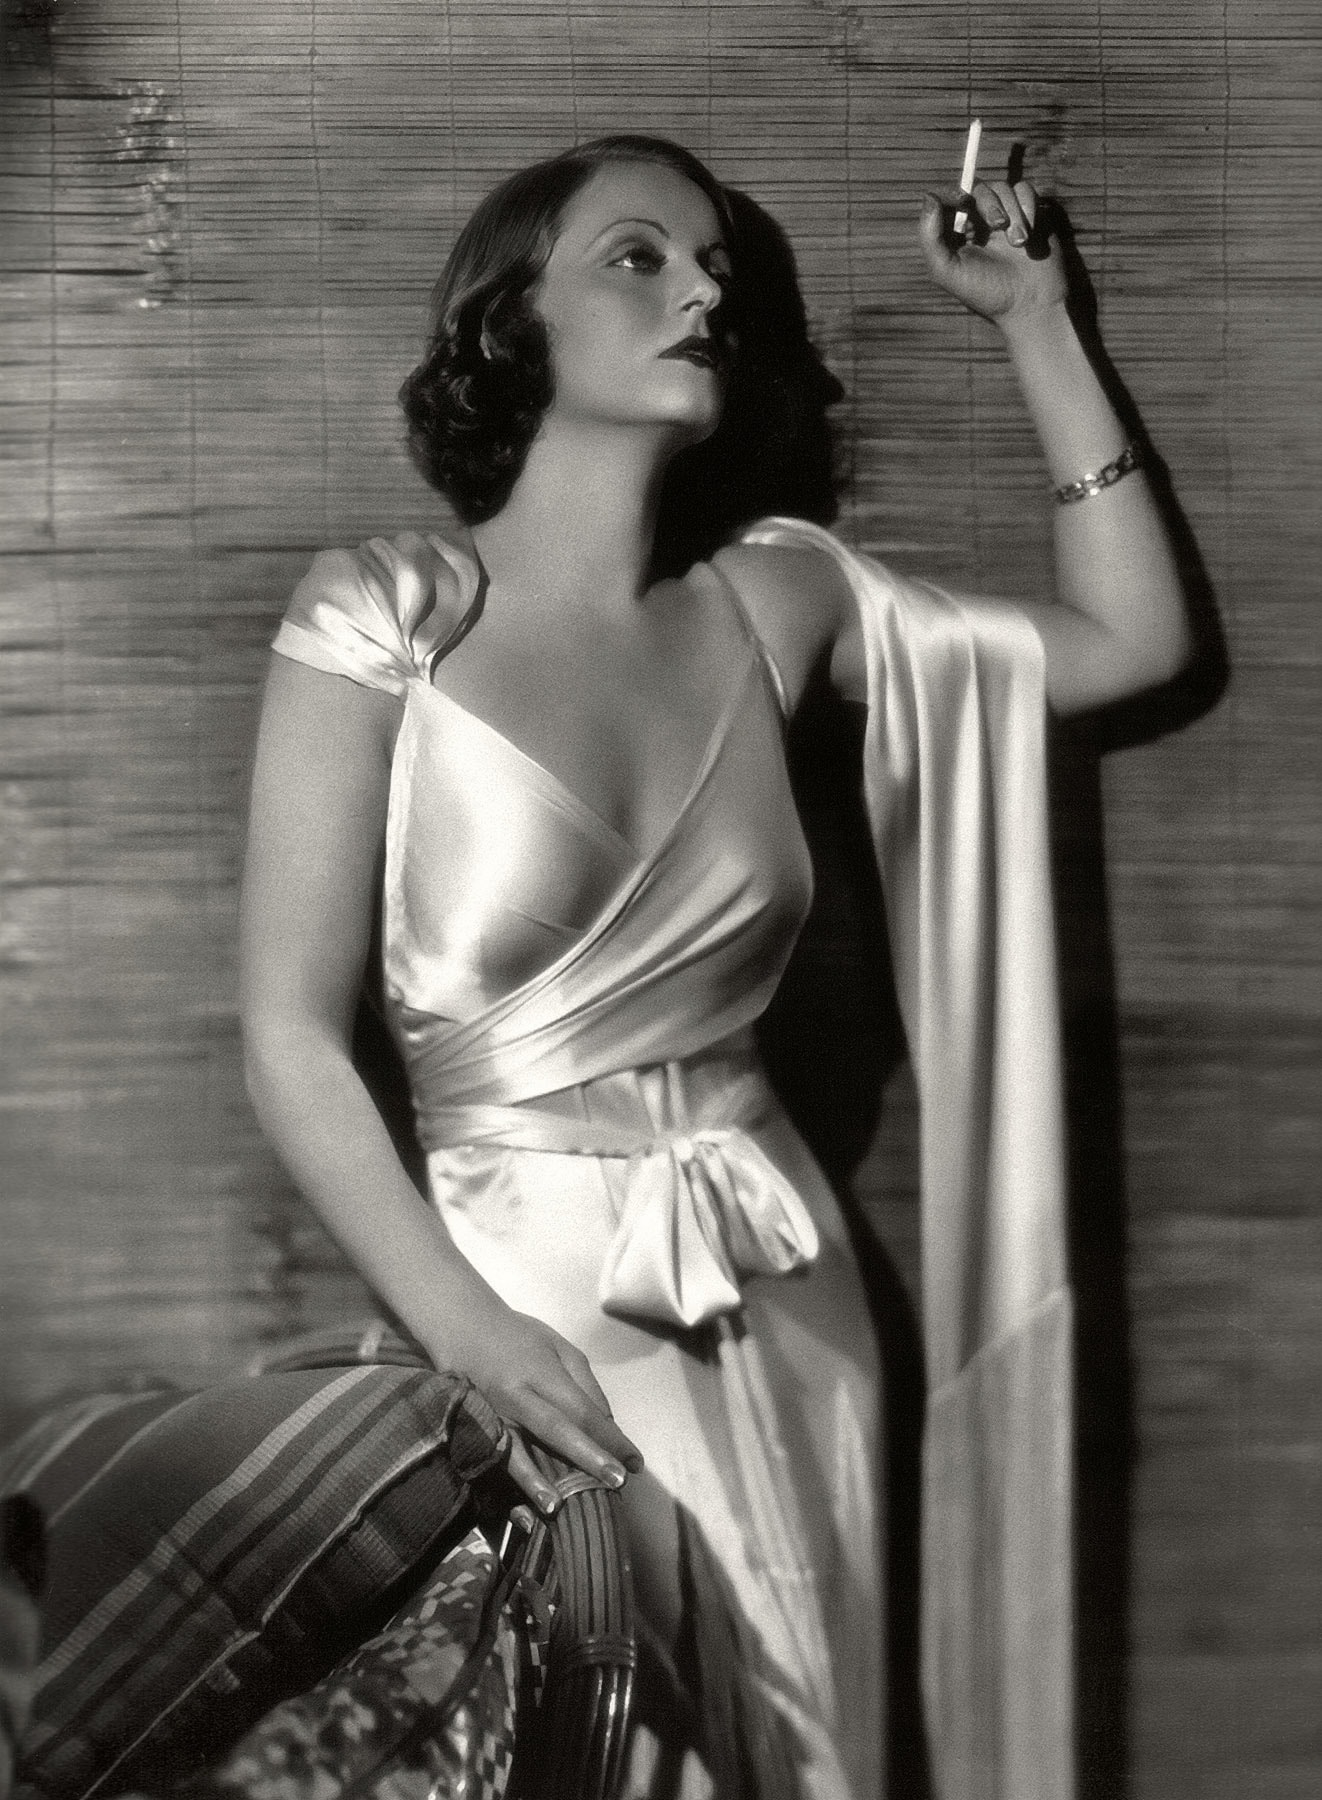 Tallulah Bankhead For mobile